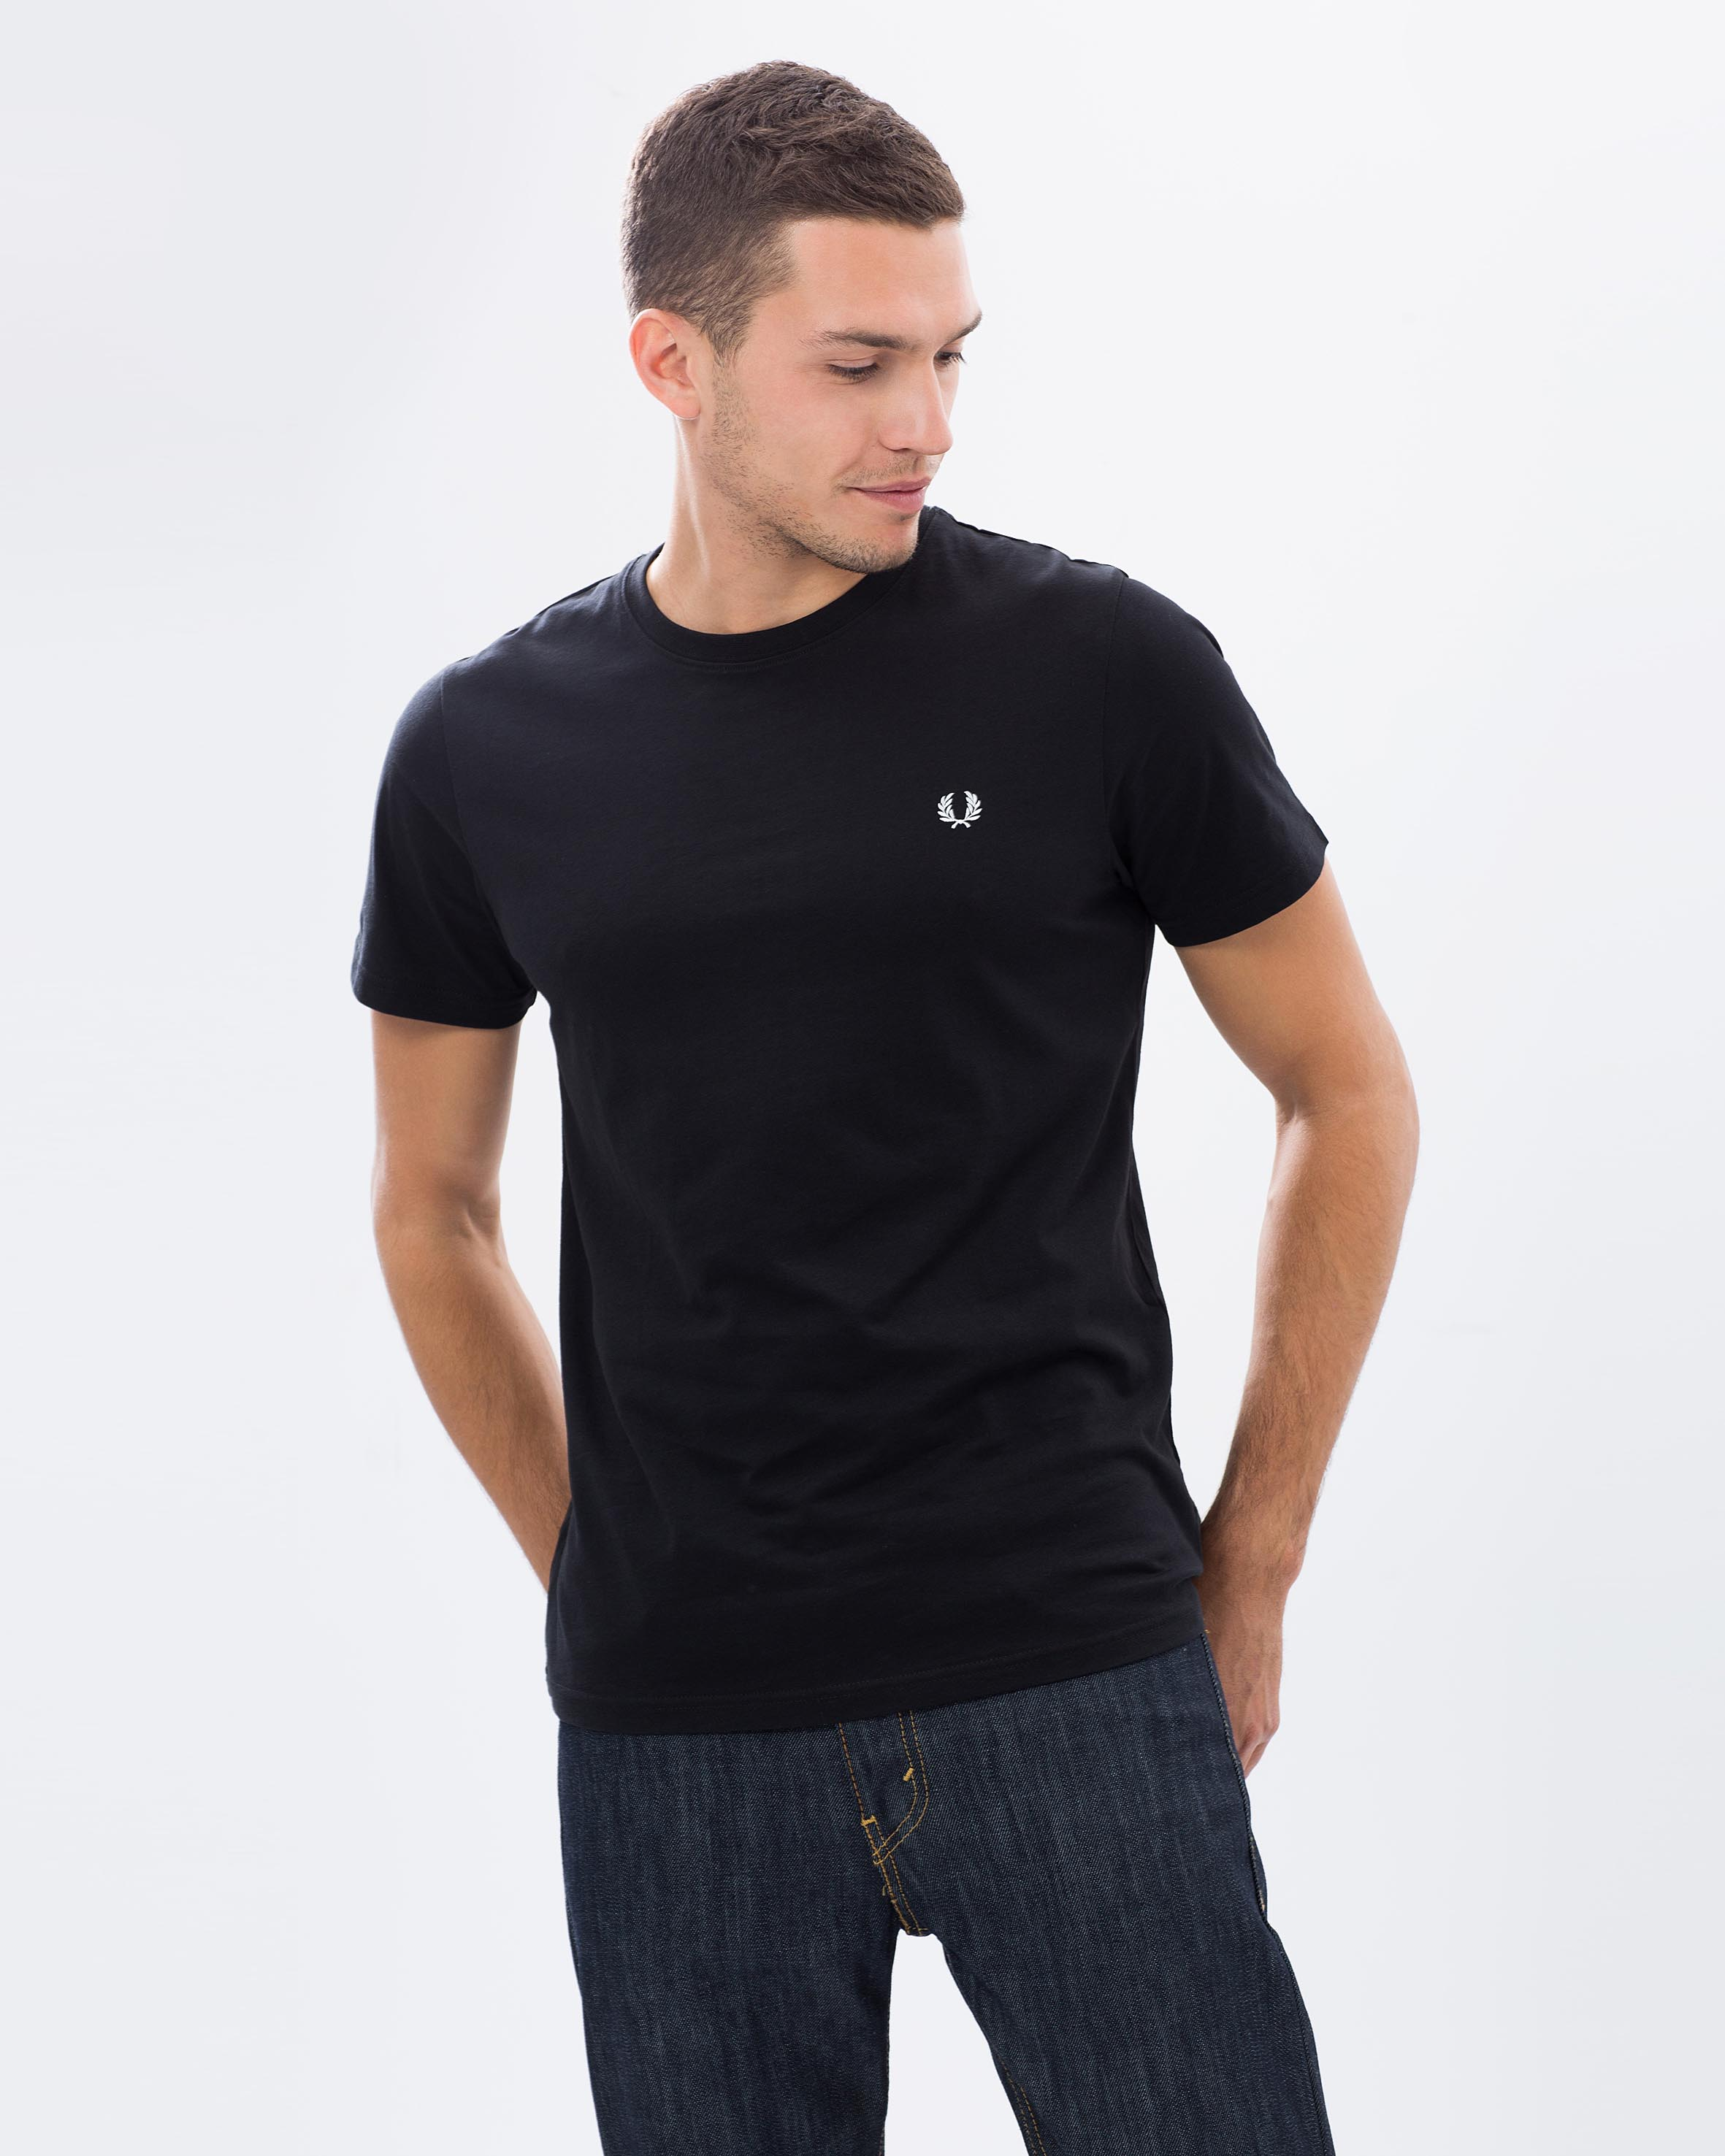 Fred Perry | Buy Fred Perry Shoes & Clothing Online Australia